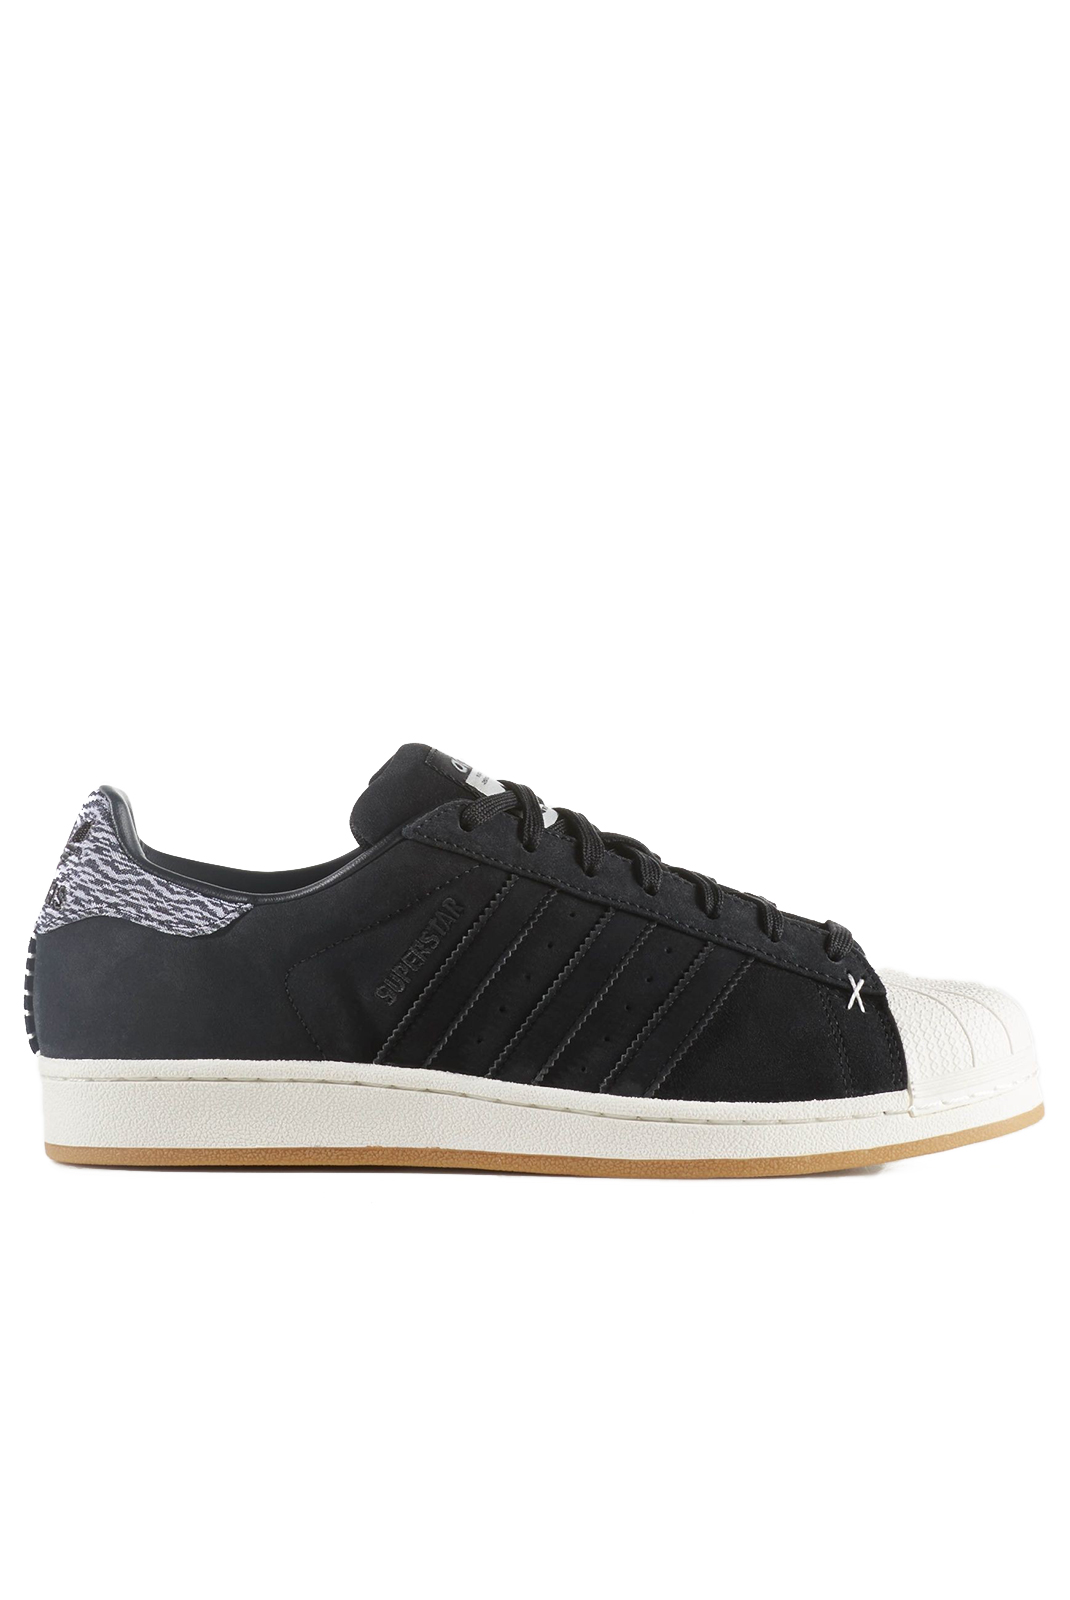 Baskets / Sport  Adidas B27737 SUPERSTAR NOIR